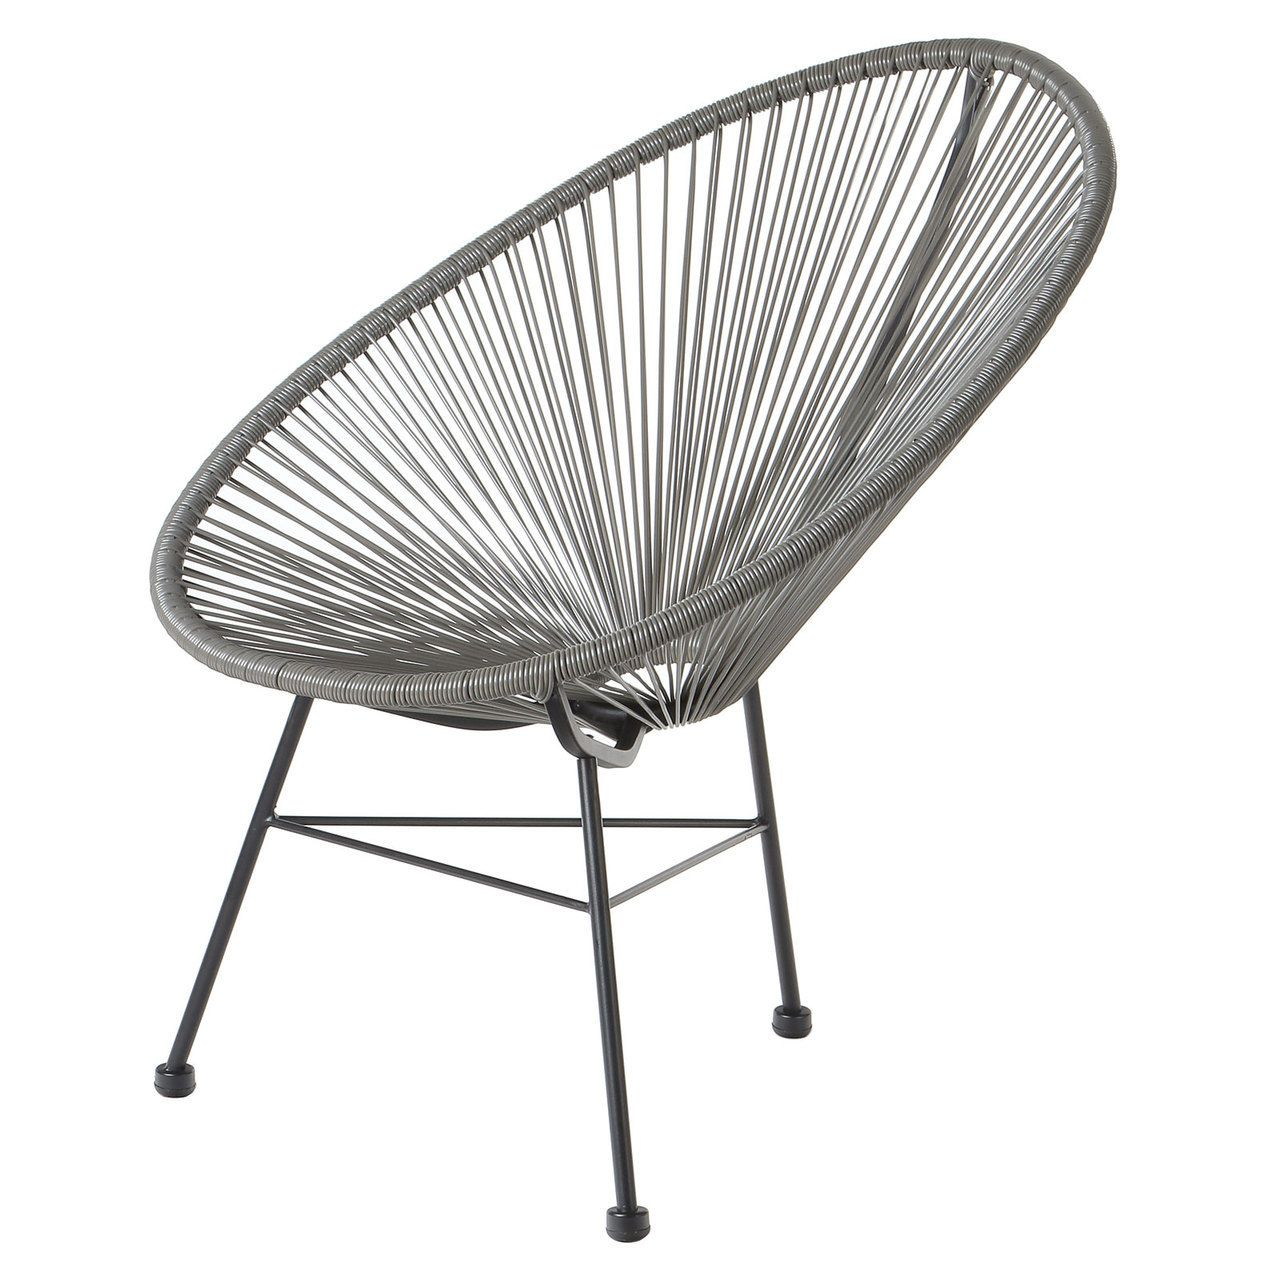 Acapulco Lounge Chair Acapulco Lounge Chair Grey Wire Basket Patio Chair